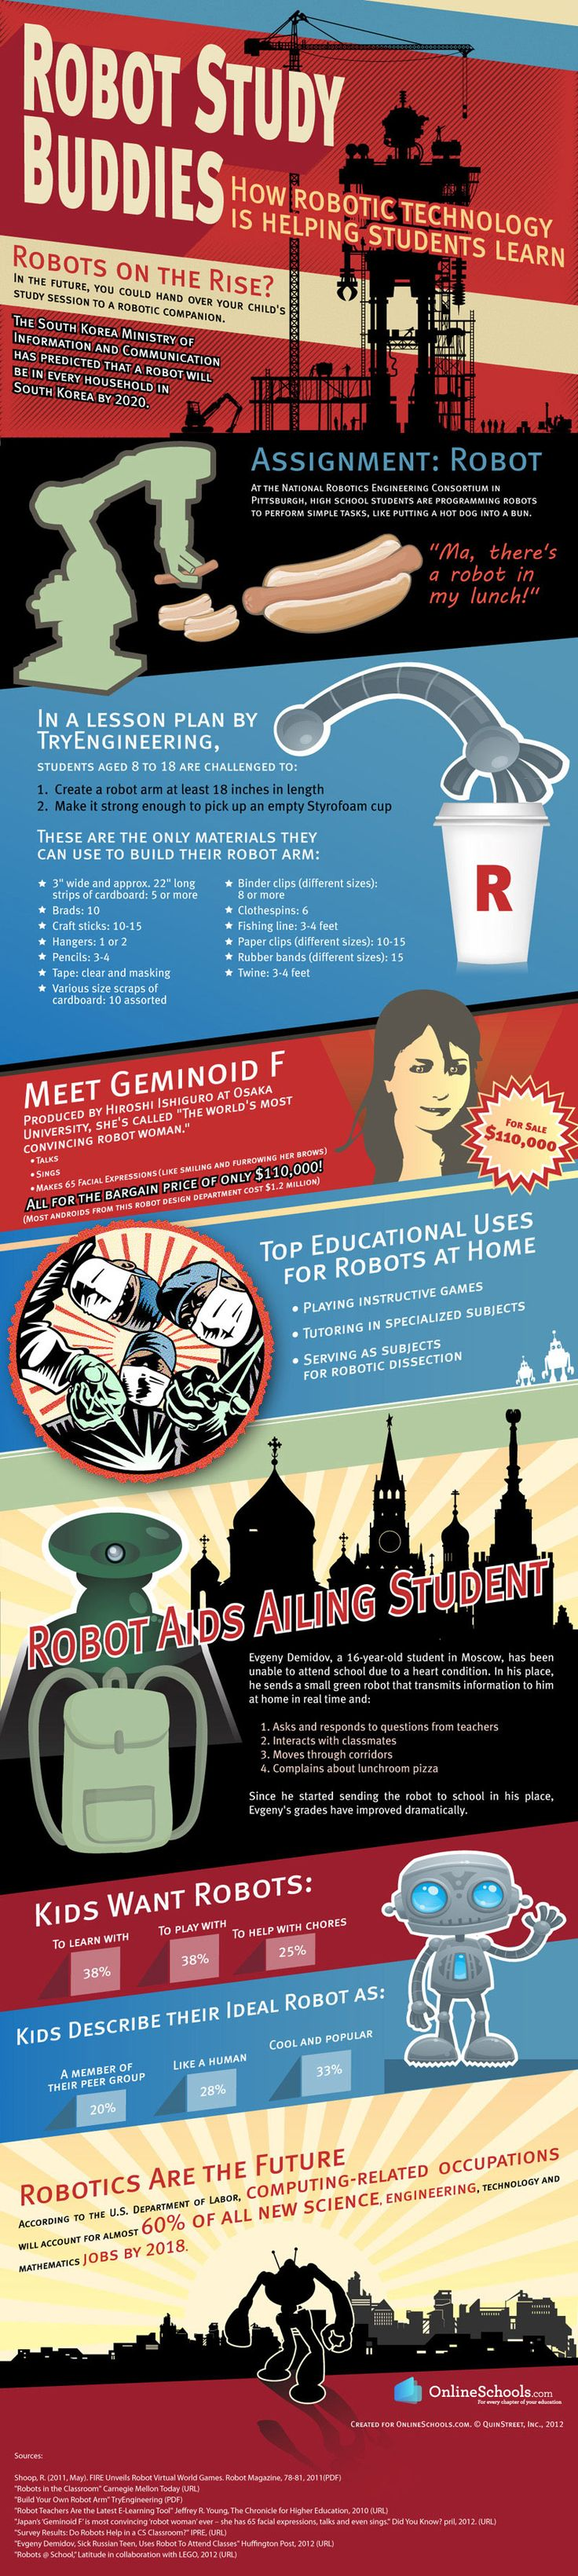 Robots as Teaching Aides Infographic